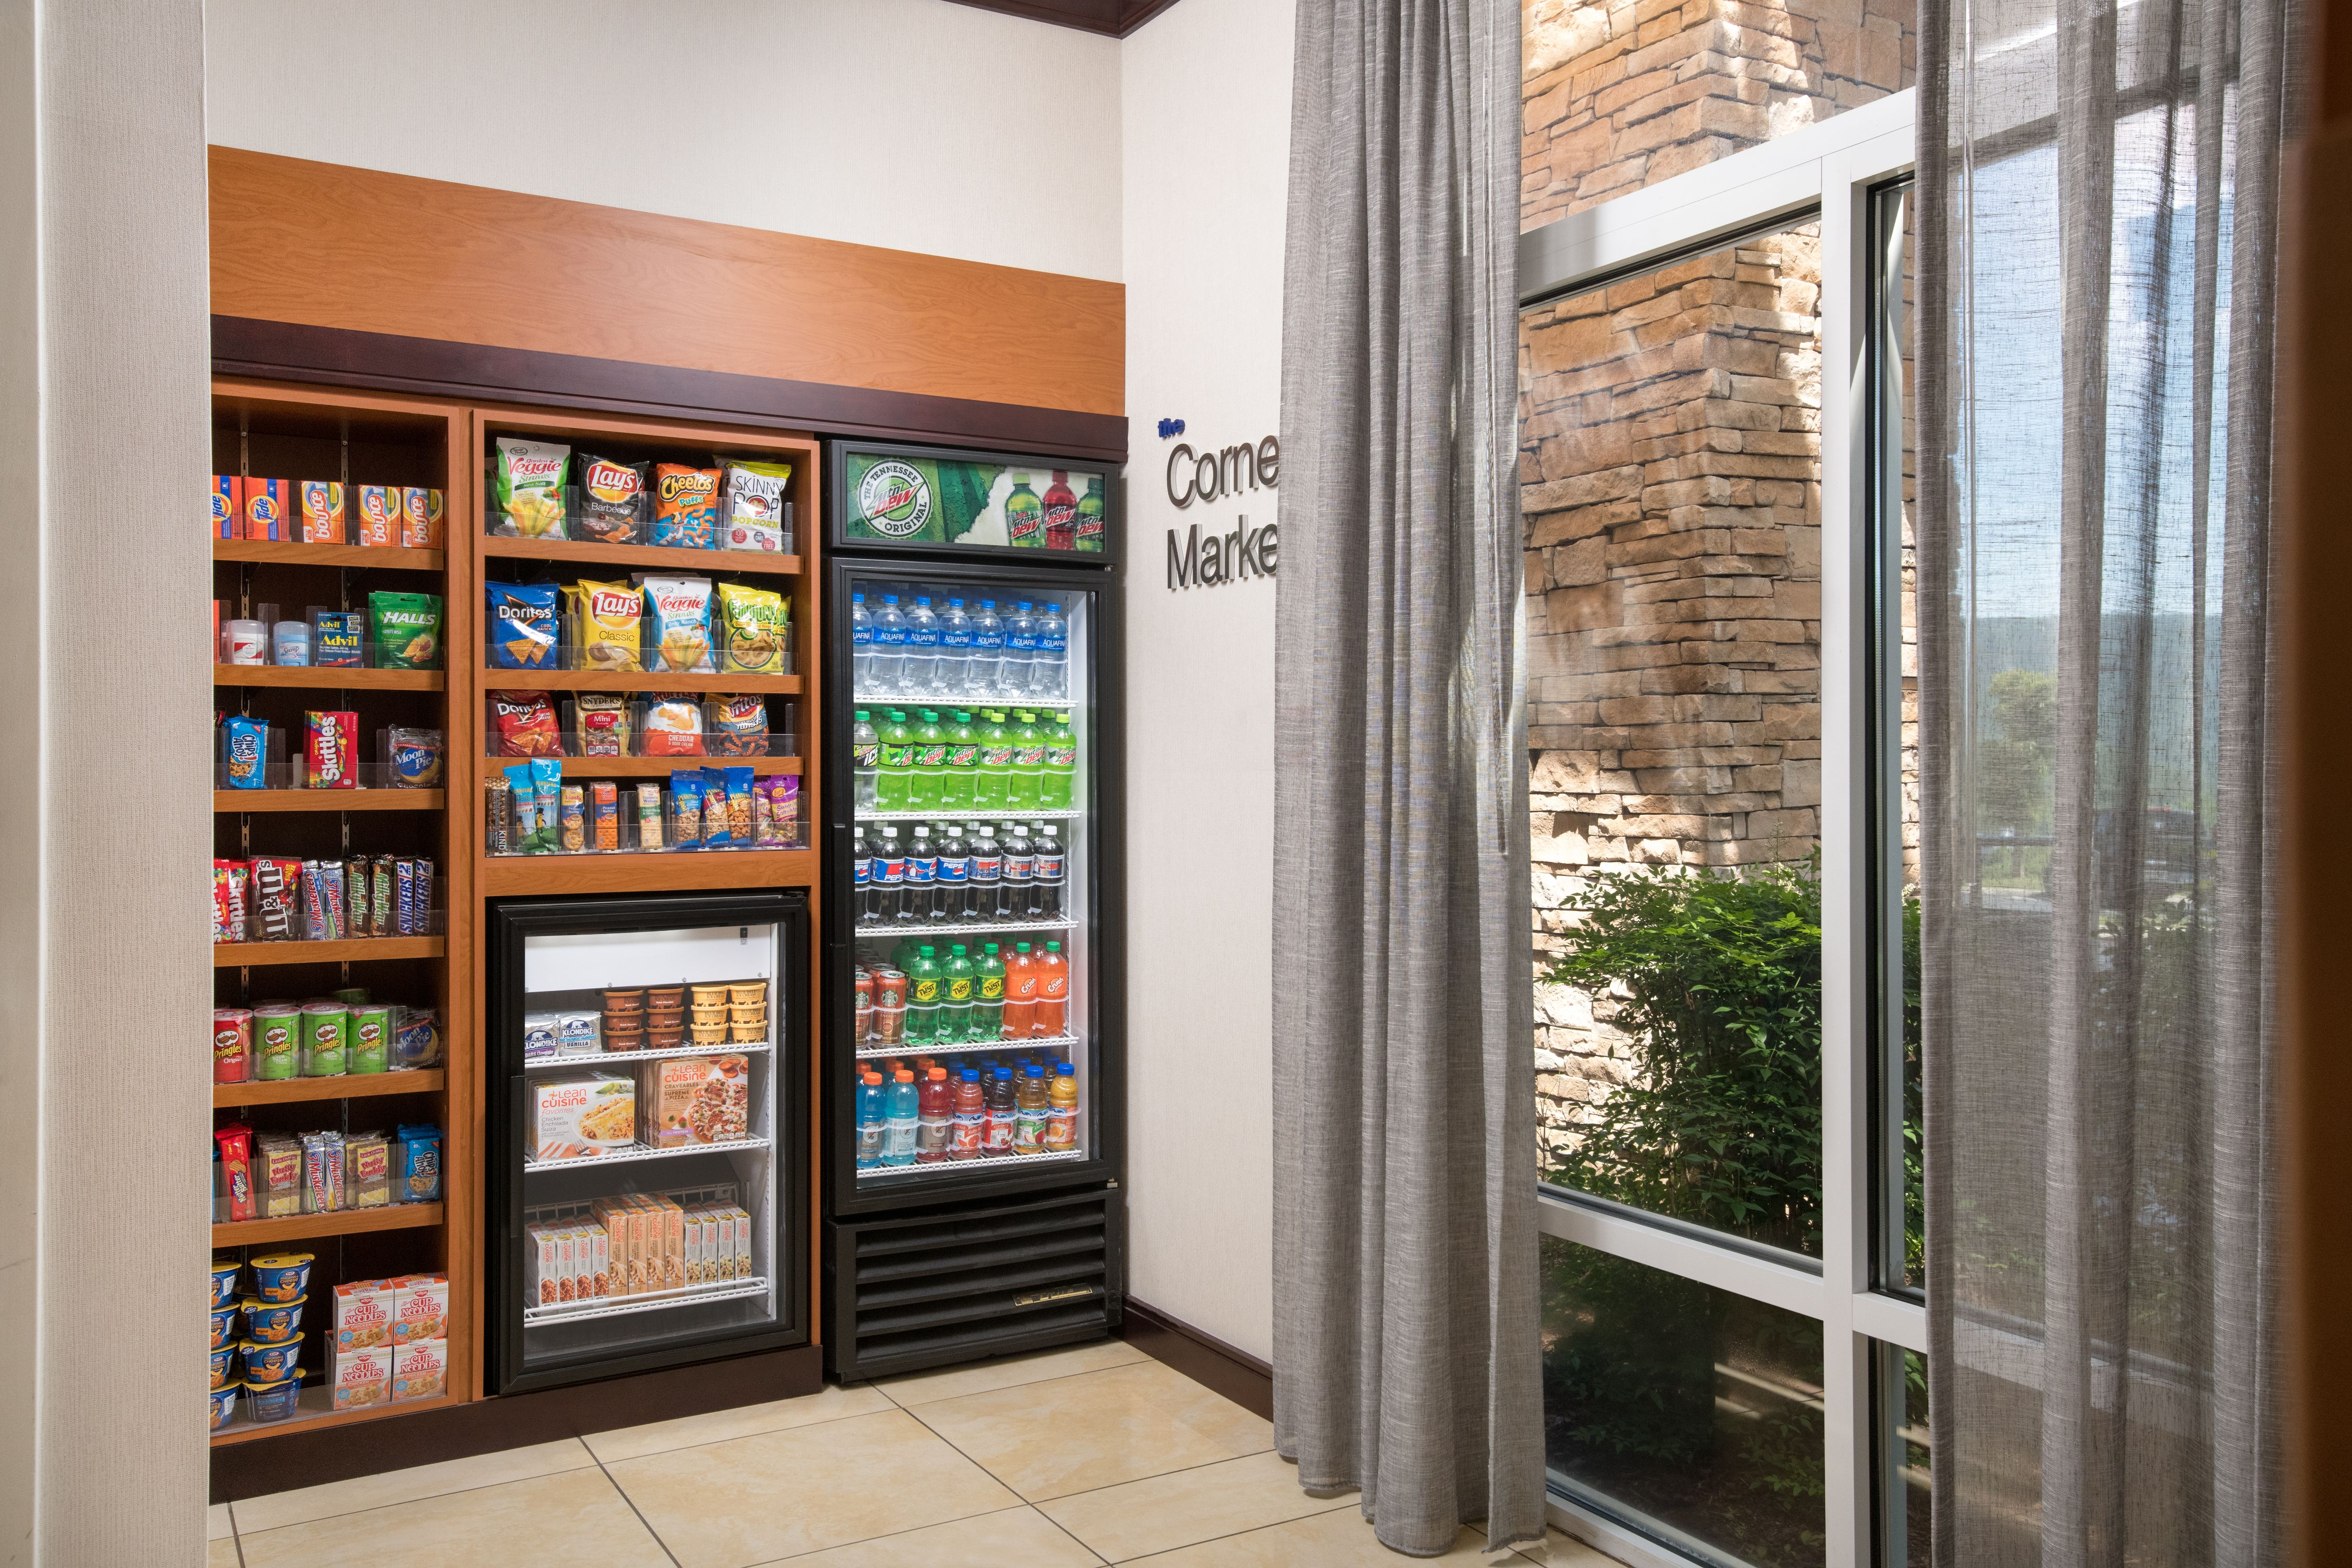 Fairfield Inn & Suites by Marriott Chattanooga I-24/Lookout Mountain image 6